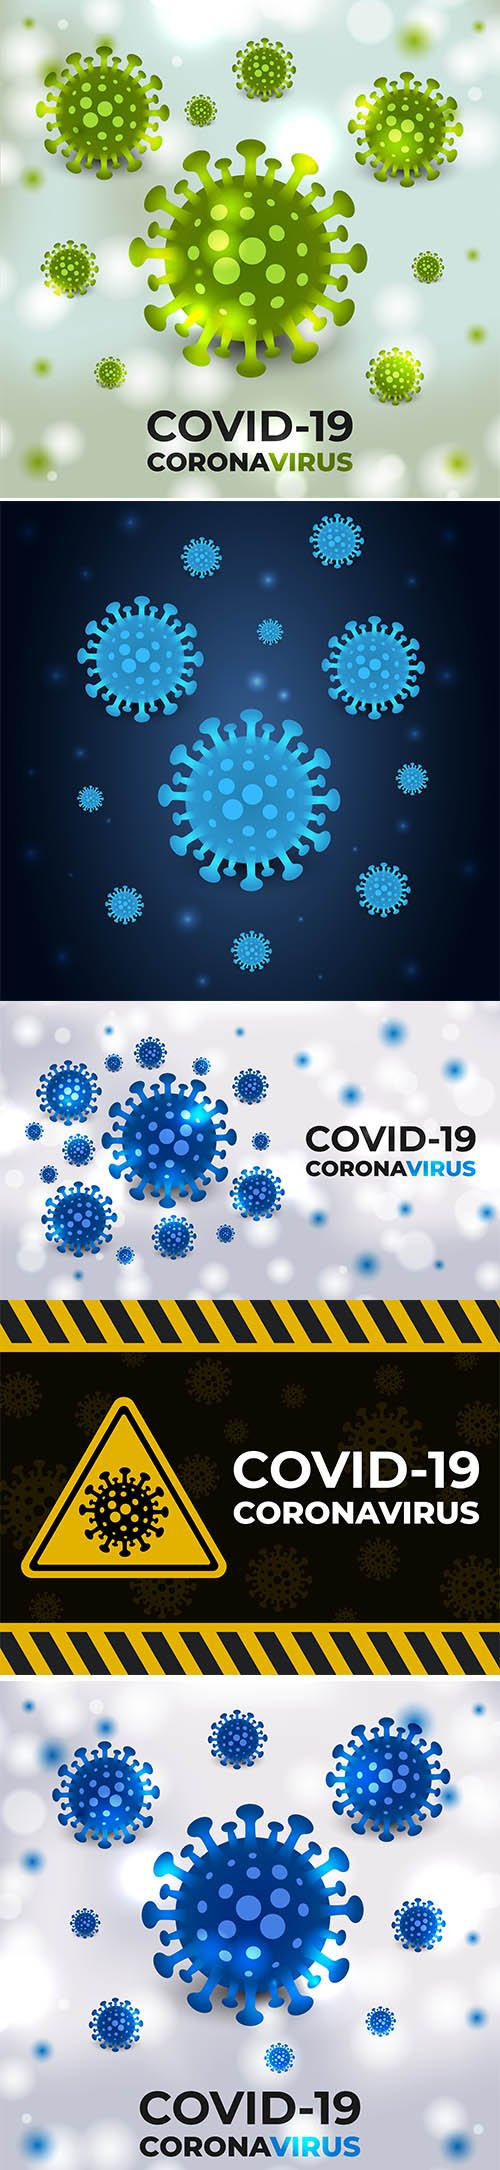 Covid-19 Coronavirus Medical Background